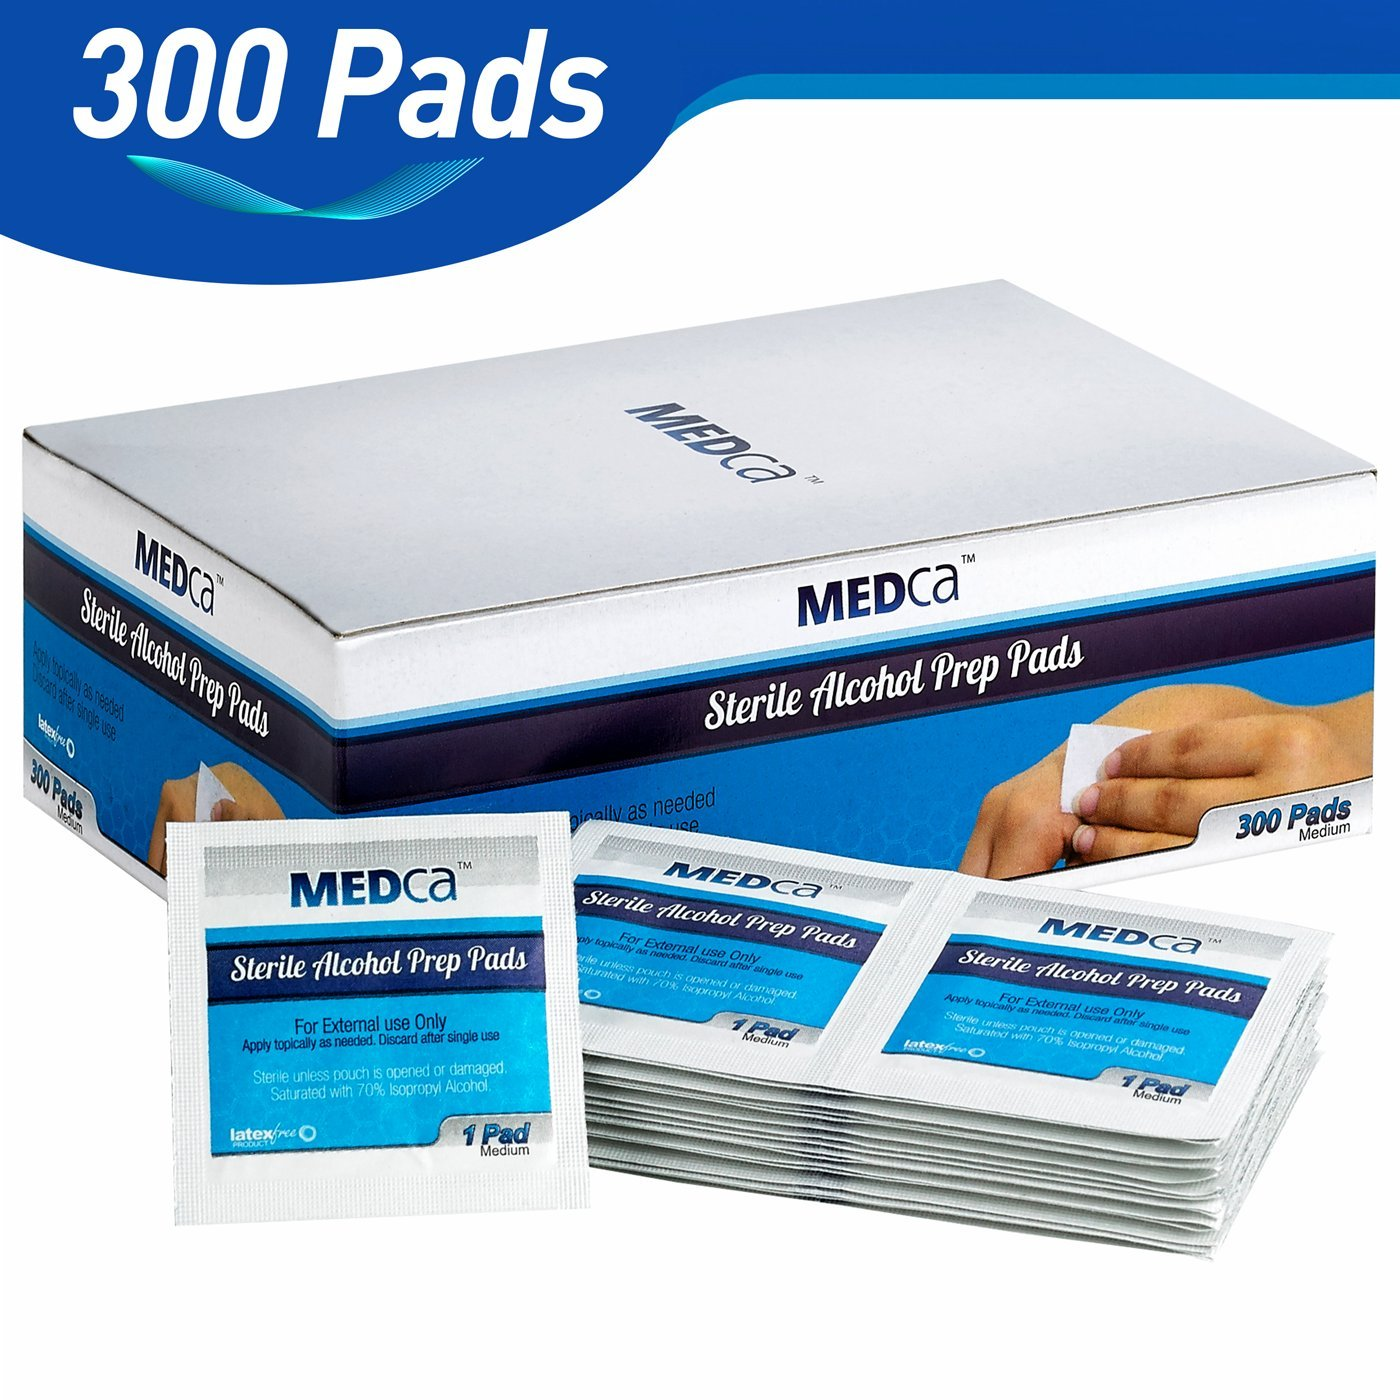 MEDca Alcohol Prep Pads, Sterile, Medium, 2-Ply (PACK OF 300)